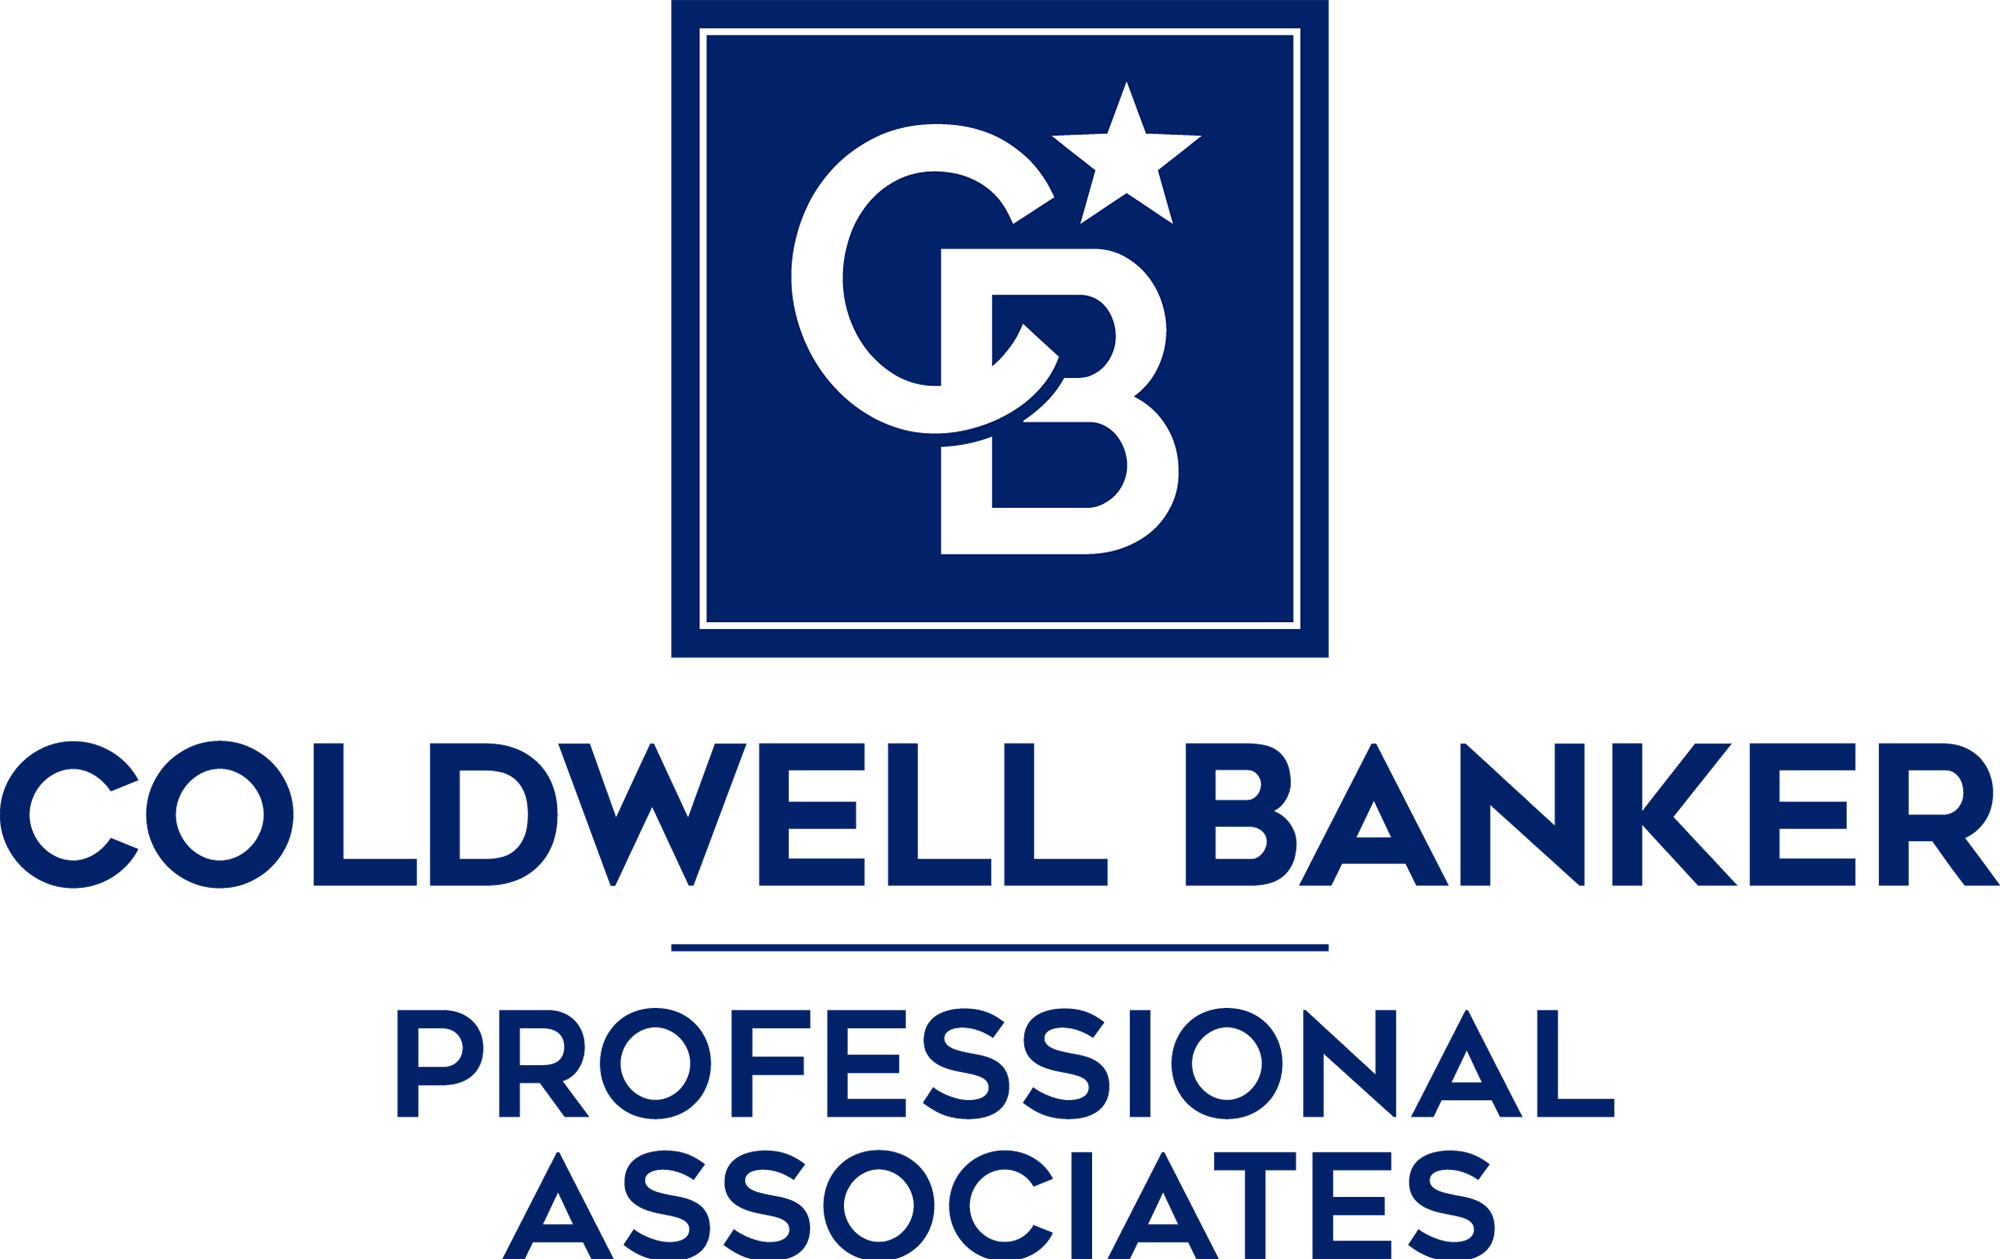 Guy Preston - Coldwell Banker Professional Associates Logo